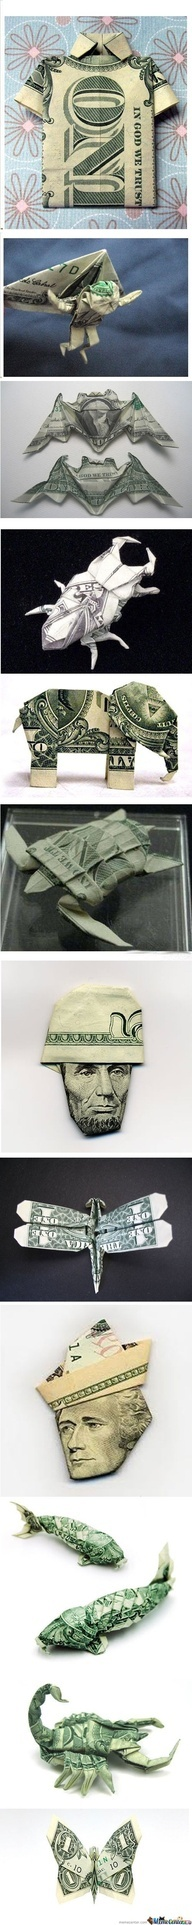 "Creative ways to fold money when giving it as a gift. Ive done the shirt one...love some of the others!"" data-componentType=""MODAL_PIN"